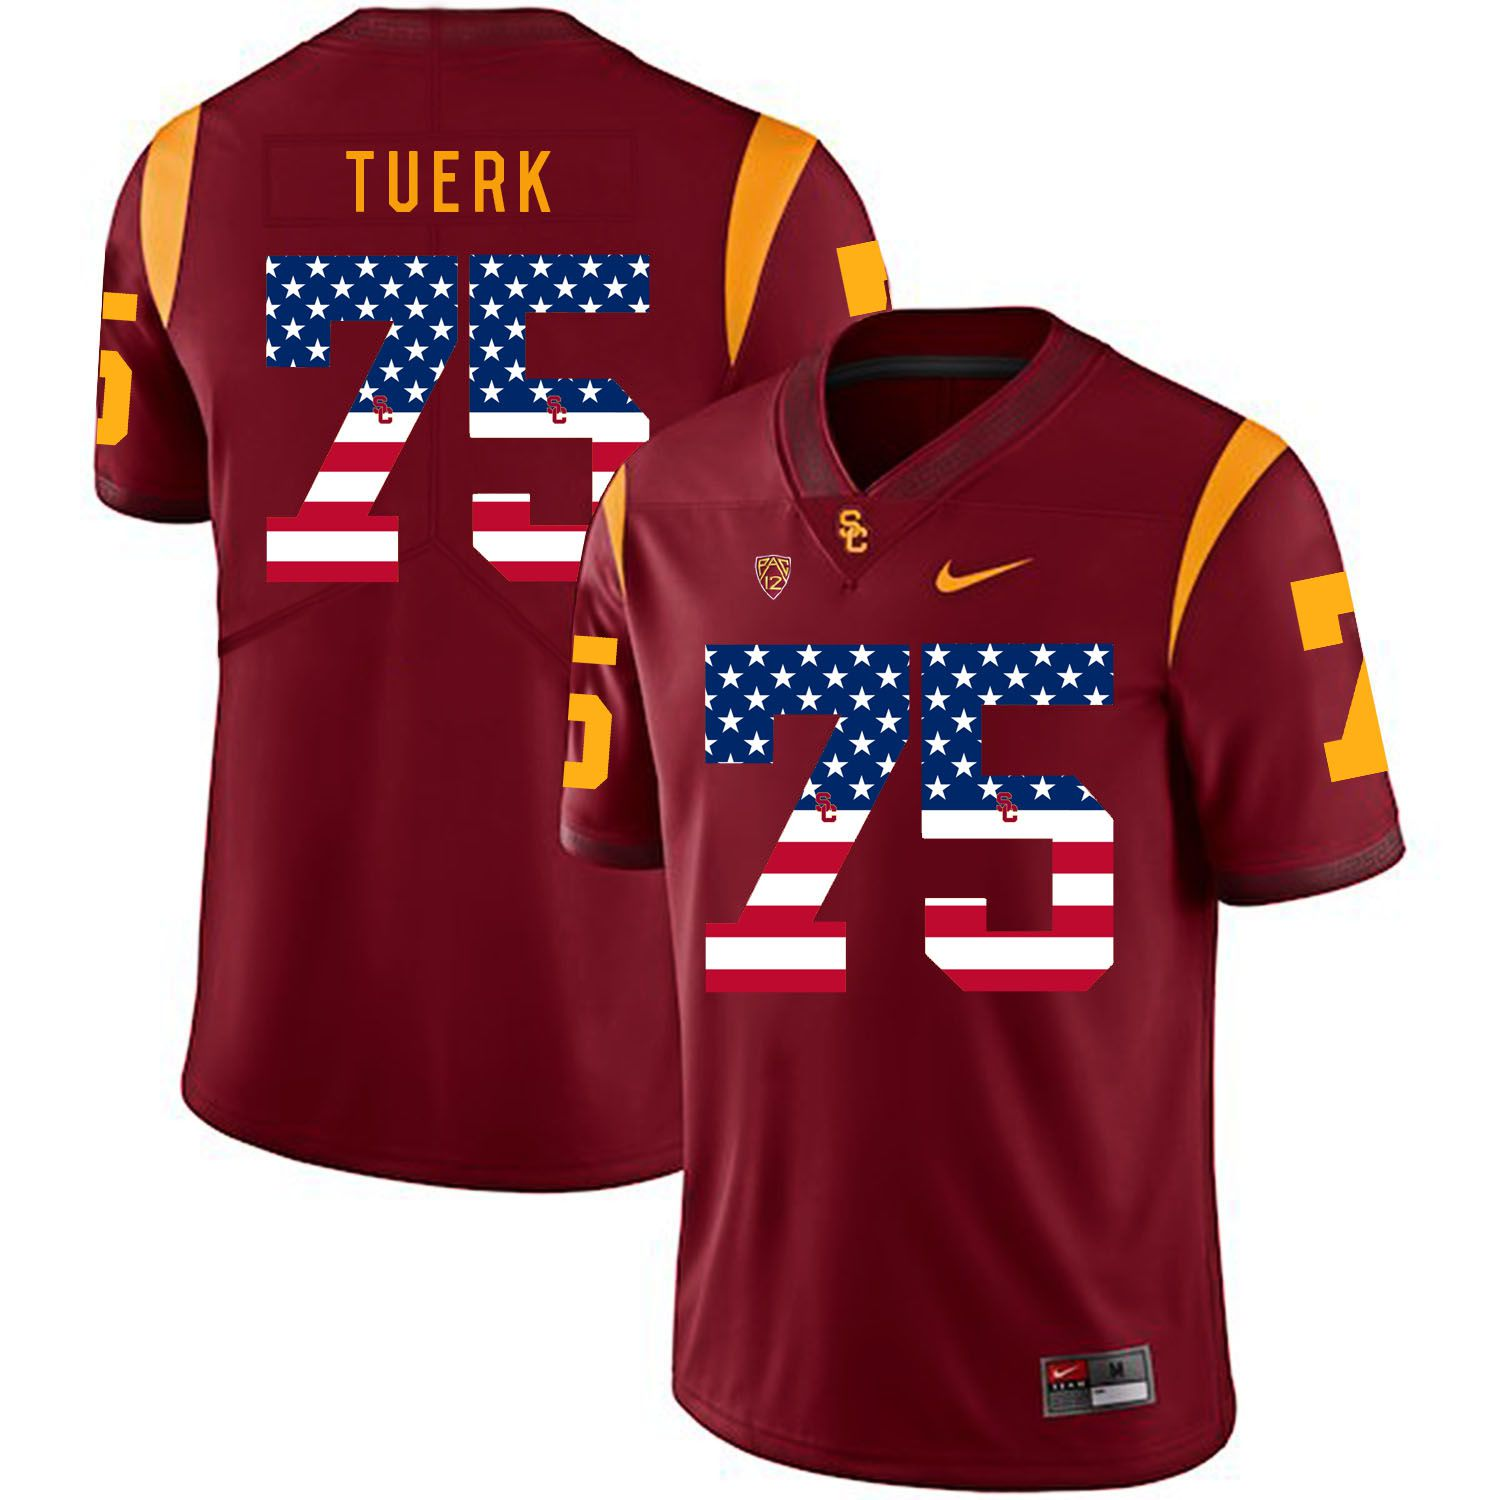 Men USC Trojans 75 Tuerk Red Flag Customized NCAA Jerseys